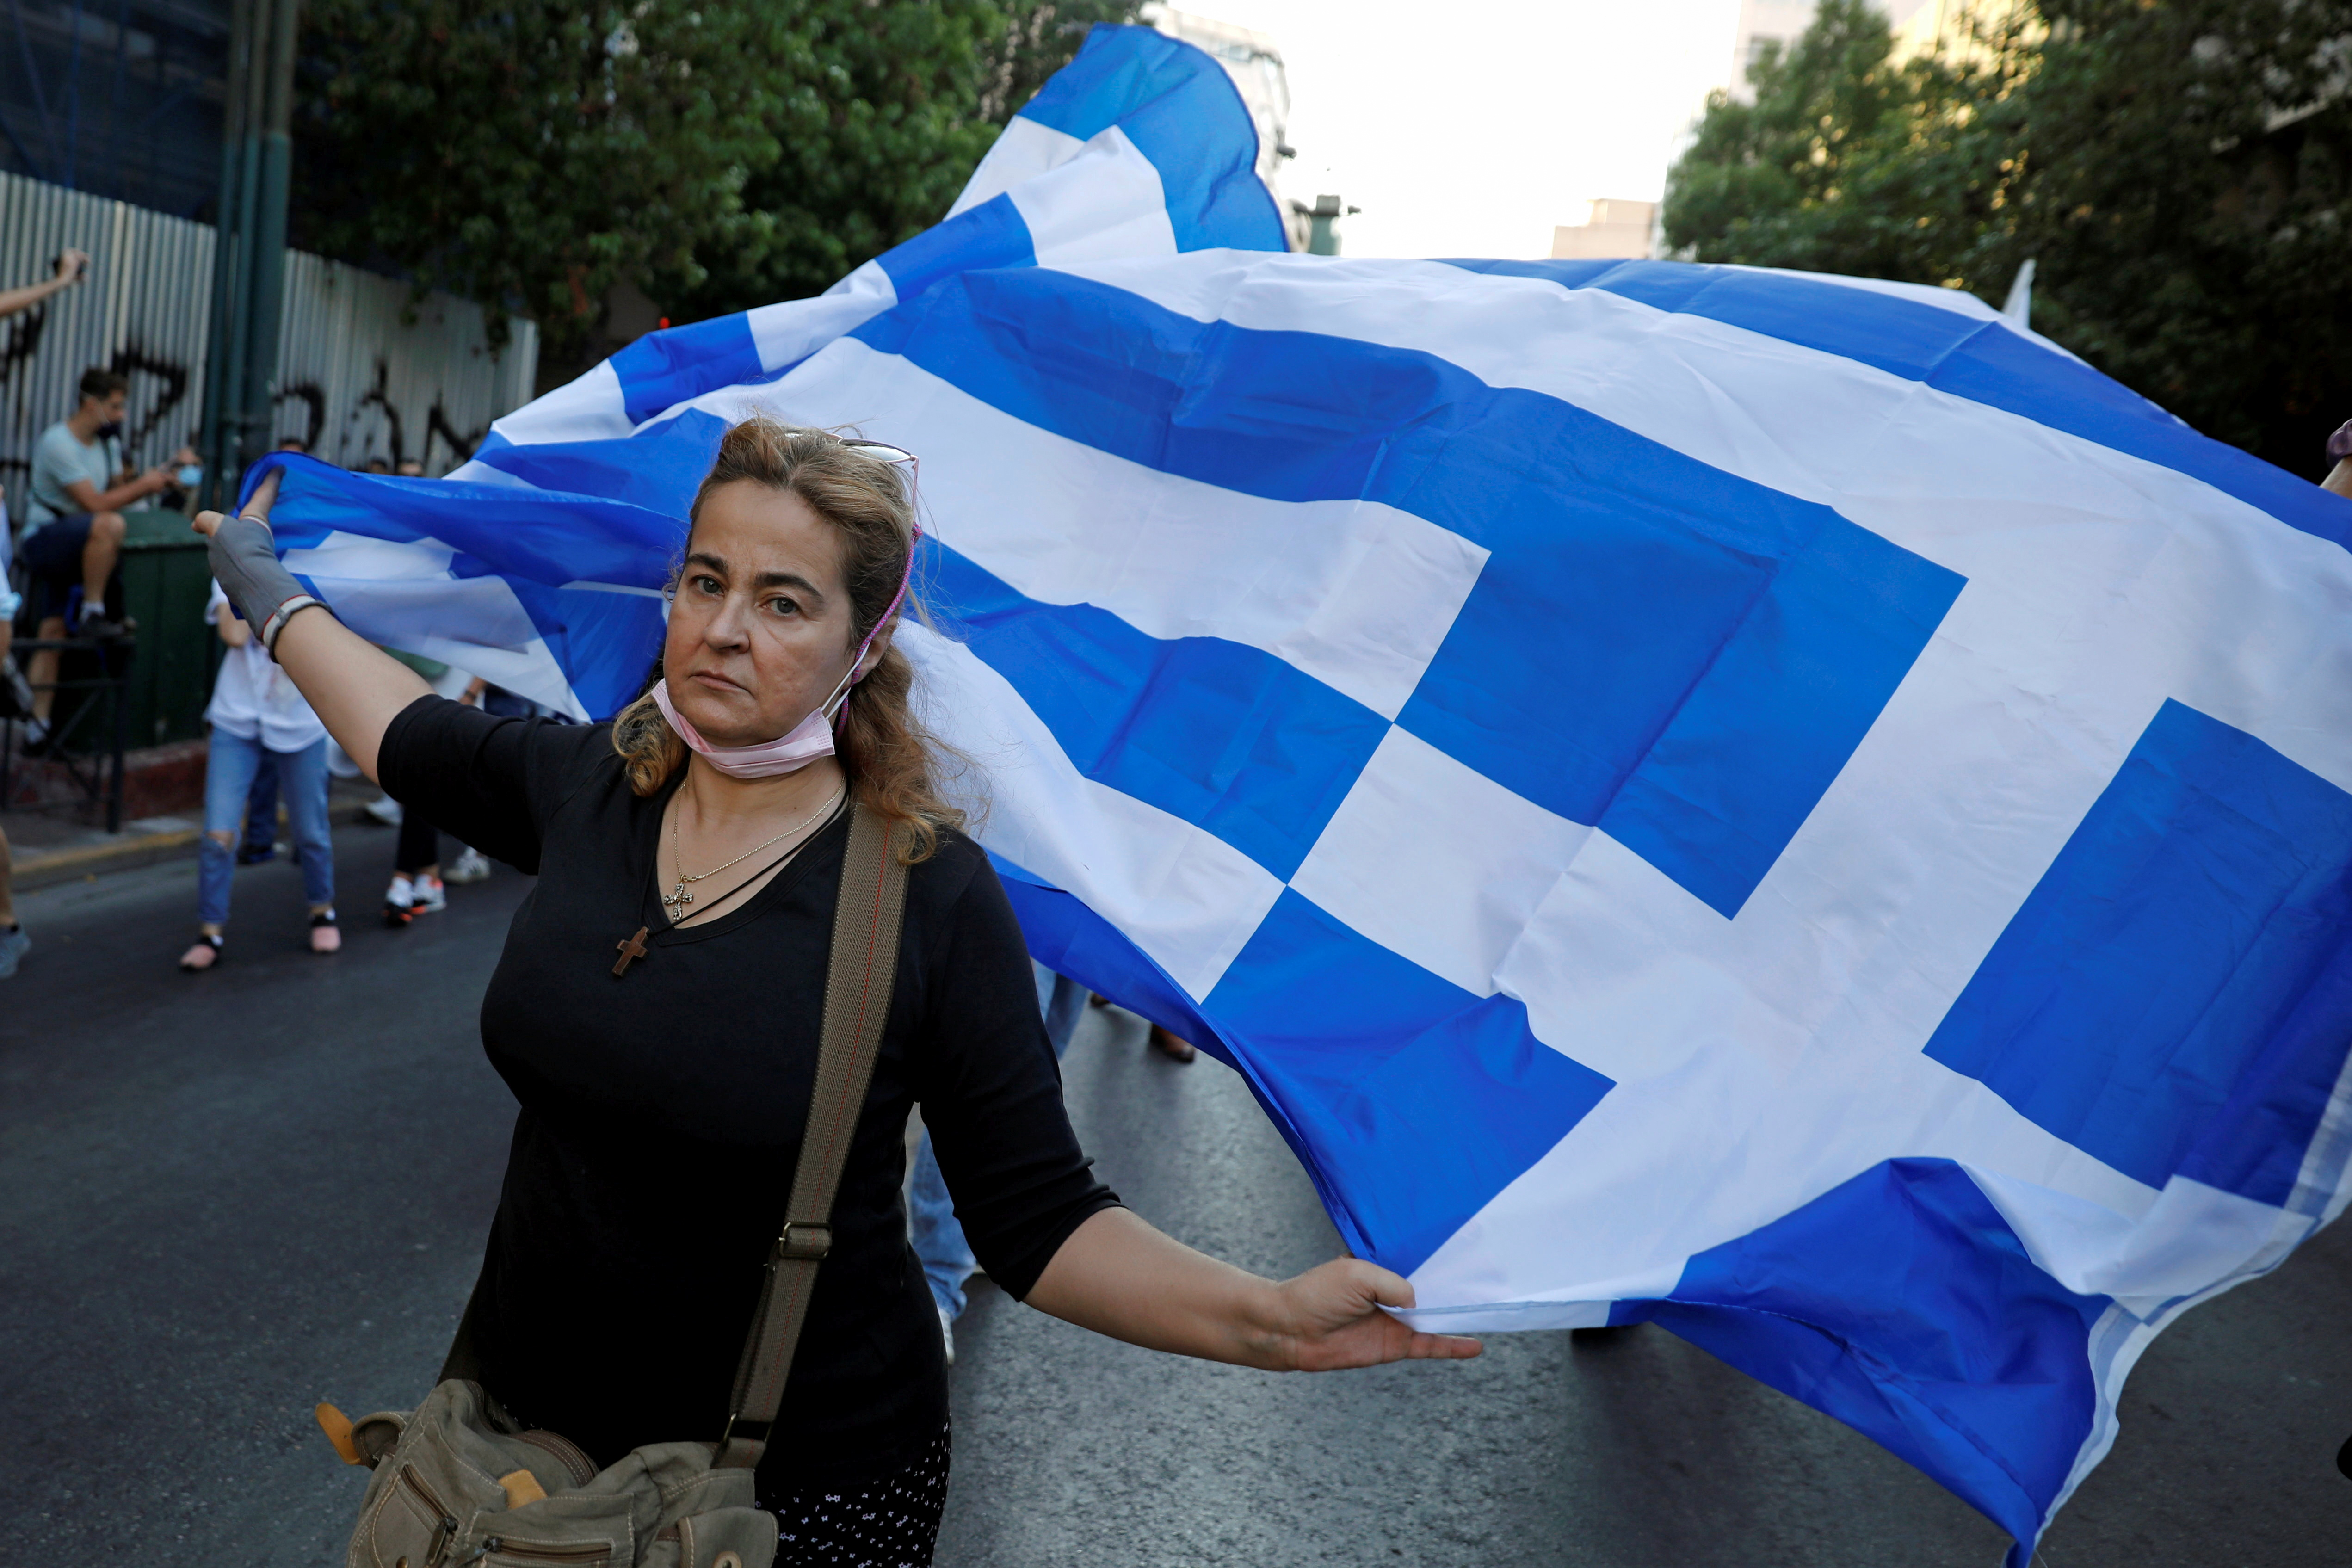 An anti-vaccine demonstrator holds a Greek flag during a protest against coronavirus disease (COVID-19) vaccinations, in Athens, Greece, July 24, 2021. REUTERS/Costas Baltas